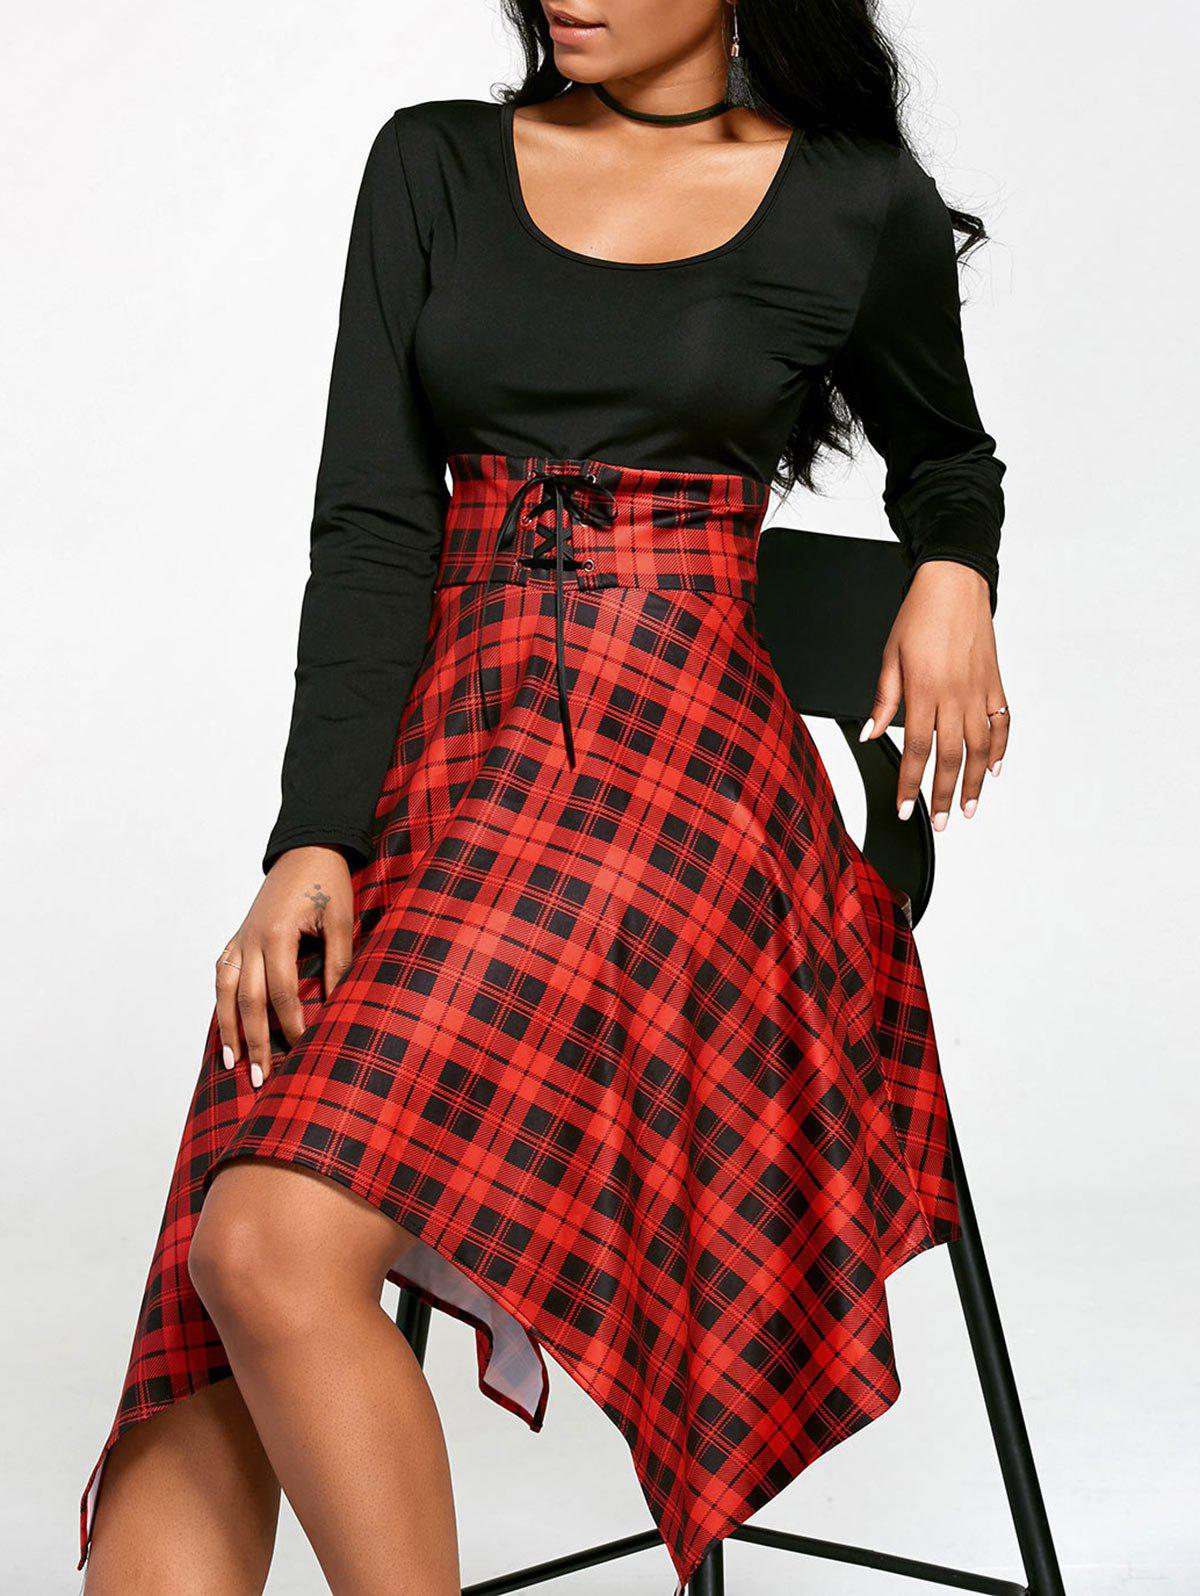 Empire Waist Long Sleeve Handkerchief DressWOMEN<br><br>Size: M; Color: BLACK&amp;RED; Style: Casual; Material: Polyester,Spandex; Silhouette: Asymmetrical; Dress Type: Fit and Flare Dress; Dresses Length: Mid-Calf; Neckline: U Neck; Sleeve Length: Long Sleeves; Waist: Empire; Embellishment: Criss-Cross; Pattern Type: Plaid; Elasticity: Elastic; With Belt: No; Season: Fall,Spring; Weight: 0.5000kg; Package Contents: 1 x Dress; Occasion: Casual;